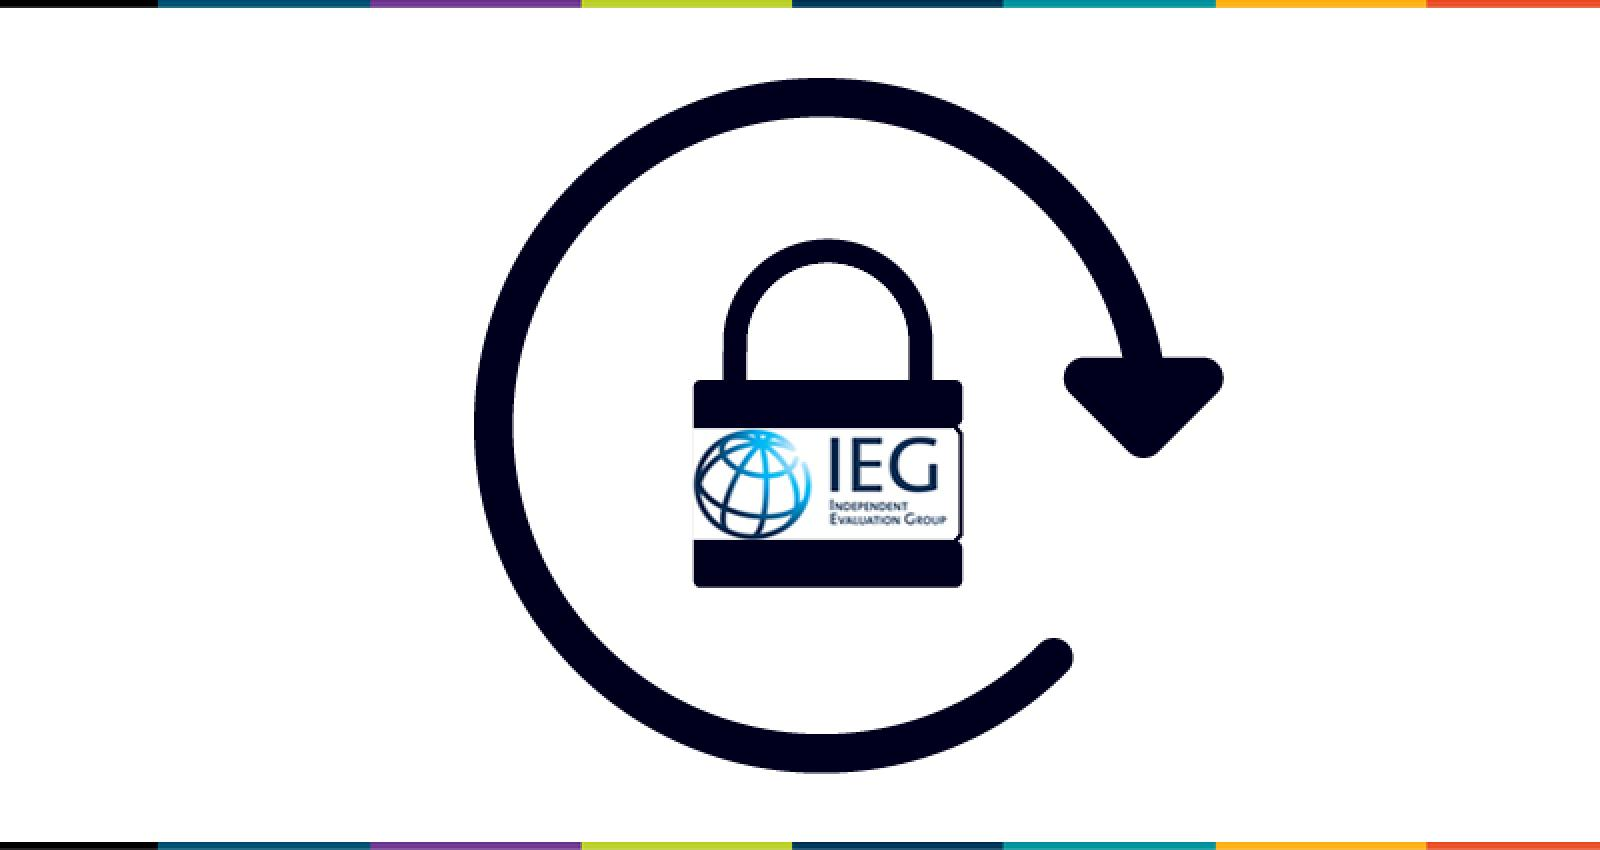 ieg access to information, ieg a2i